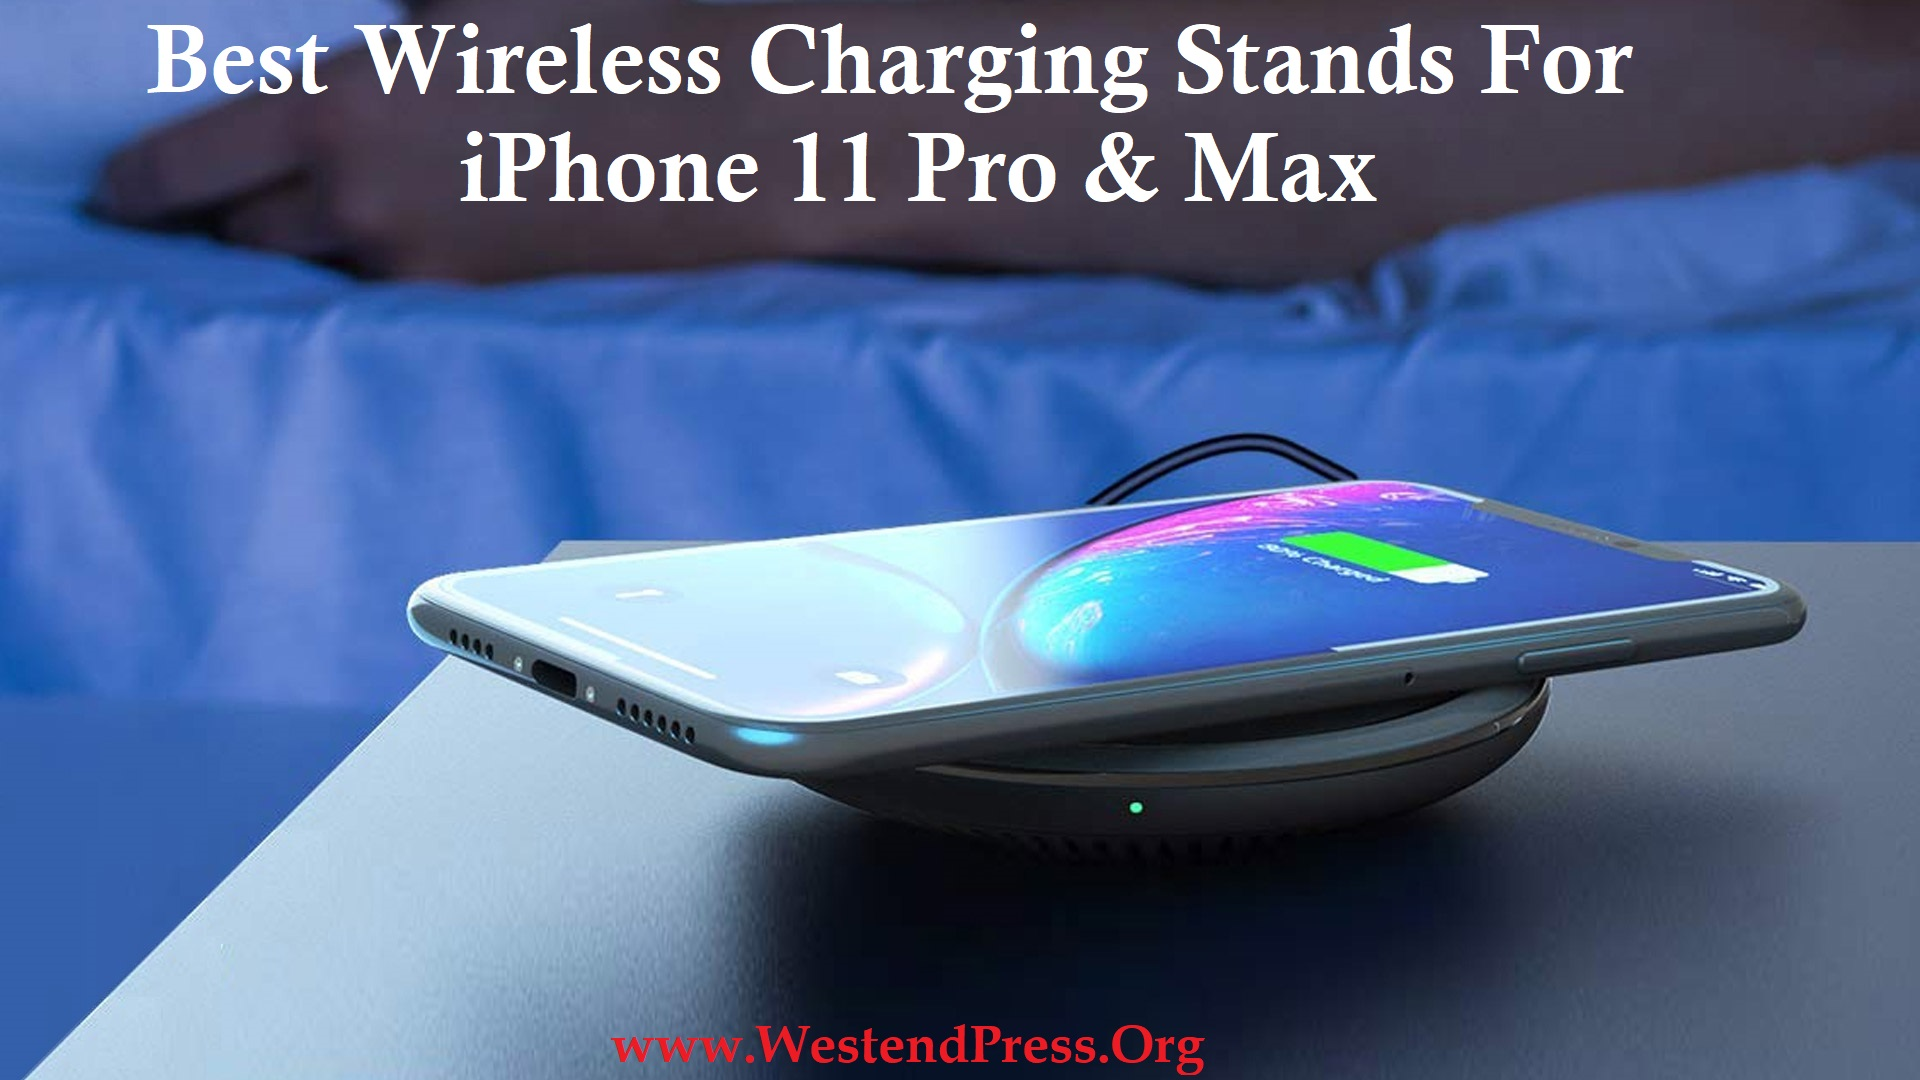 Best wireless charging stands for iPhone 11 pro and max